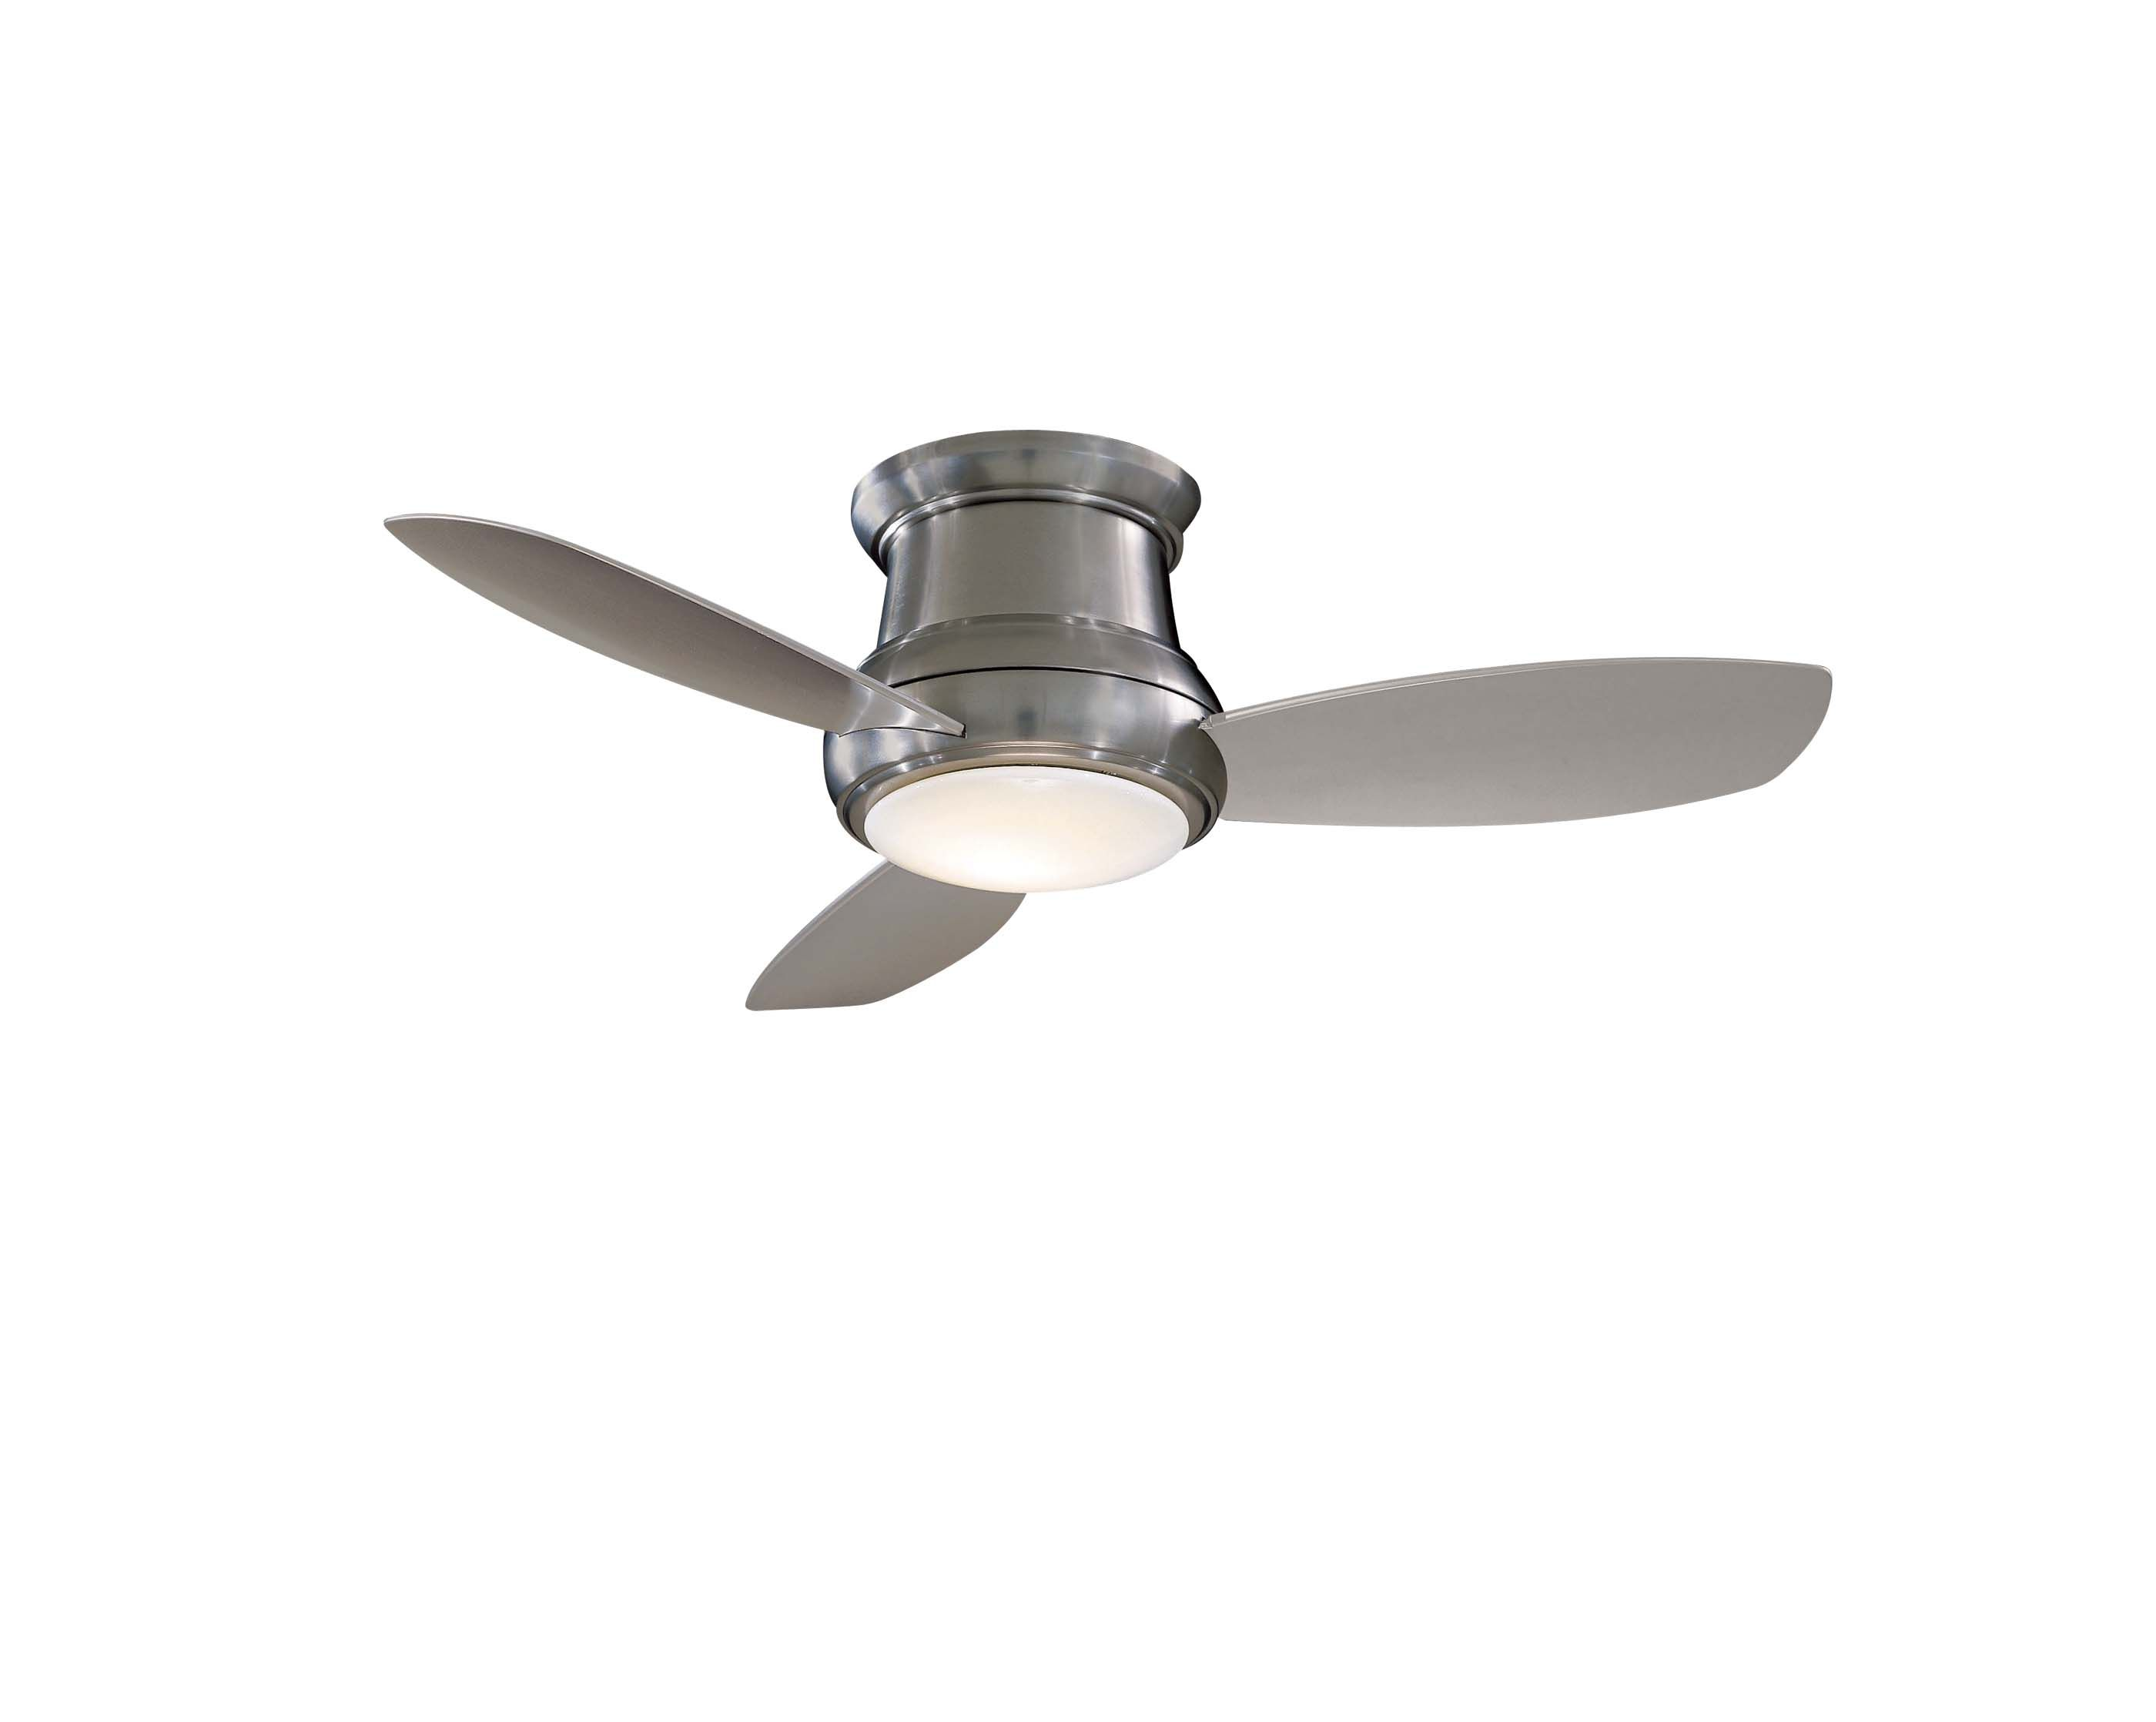 Concept Ii Ceiling Fan With Light By Minka Aire F518l Bn Ceiling Fan Flush Mount Ceiling Fan Minka Aire Ceiling Fan